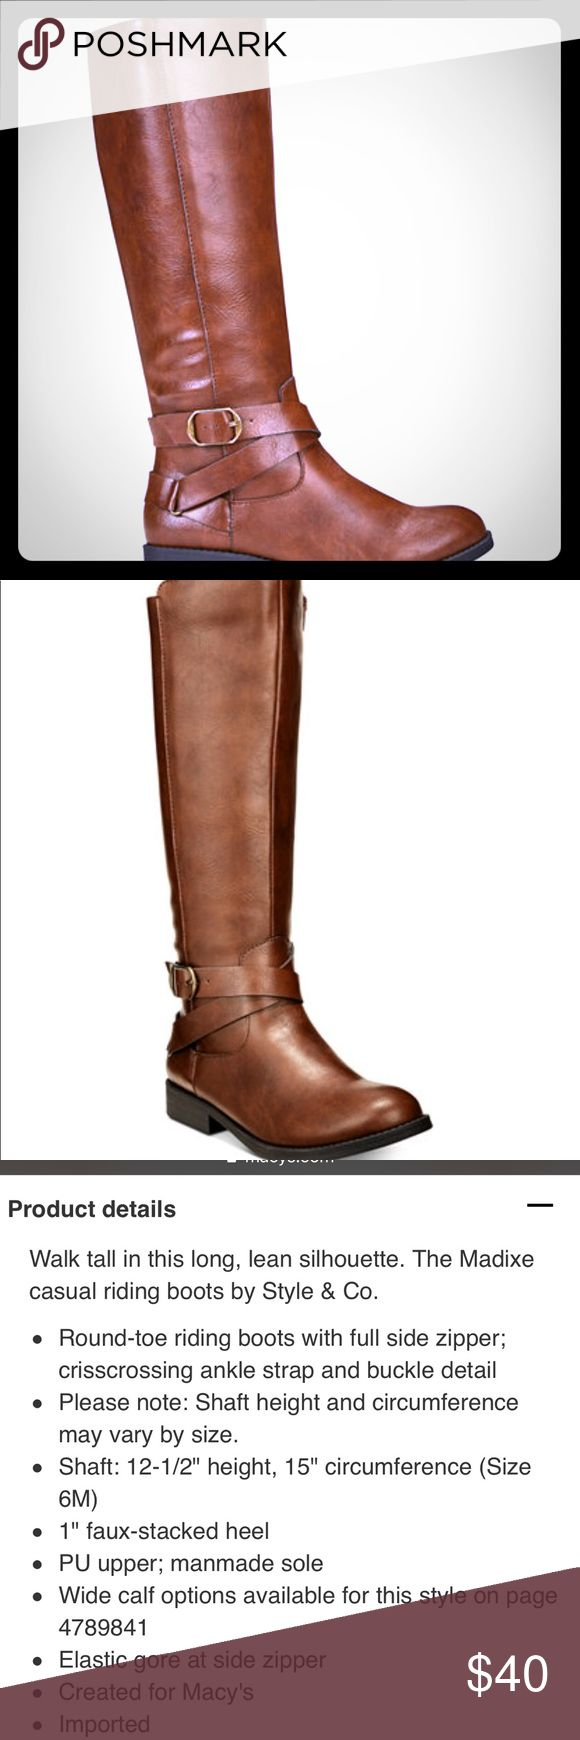 Cognac Boots Size 10 Stylish cognac riding boots. Great boots. Great fit. NWT Size 10. Style & Co Shoes Heeled Boots